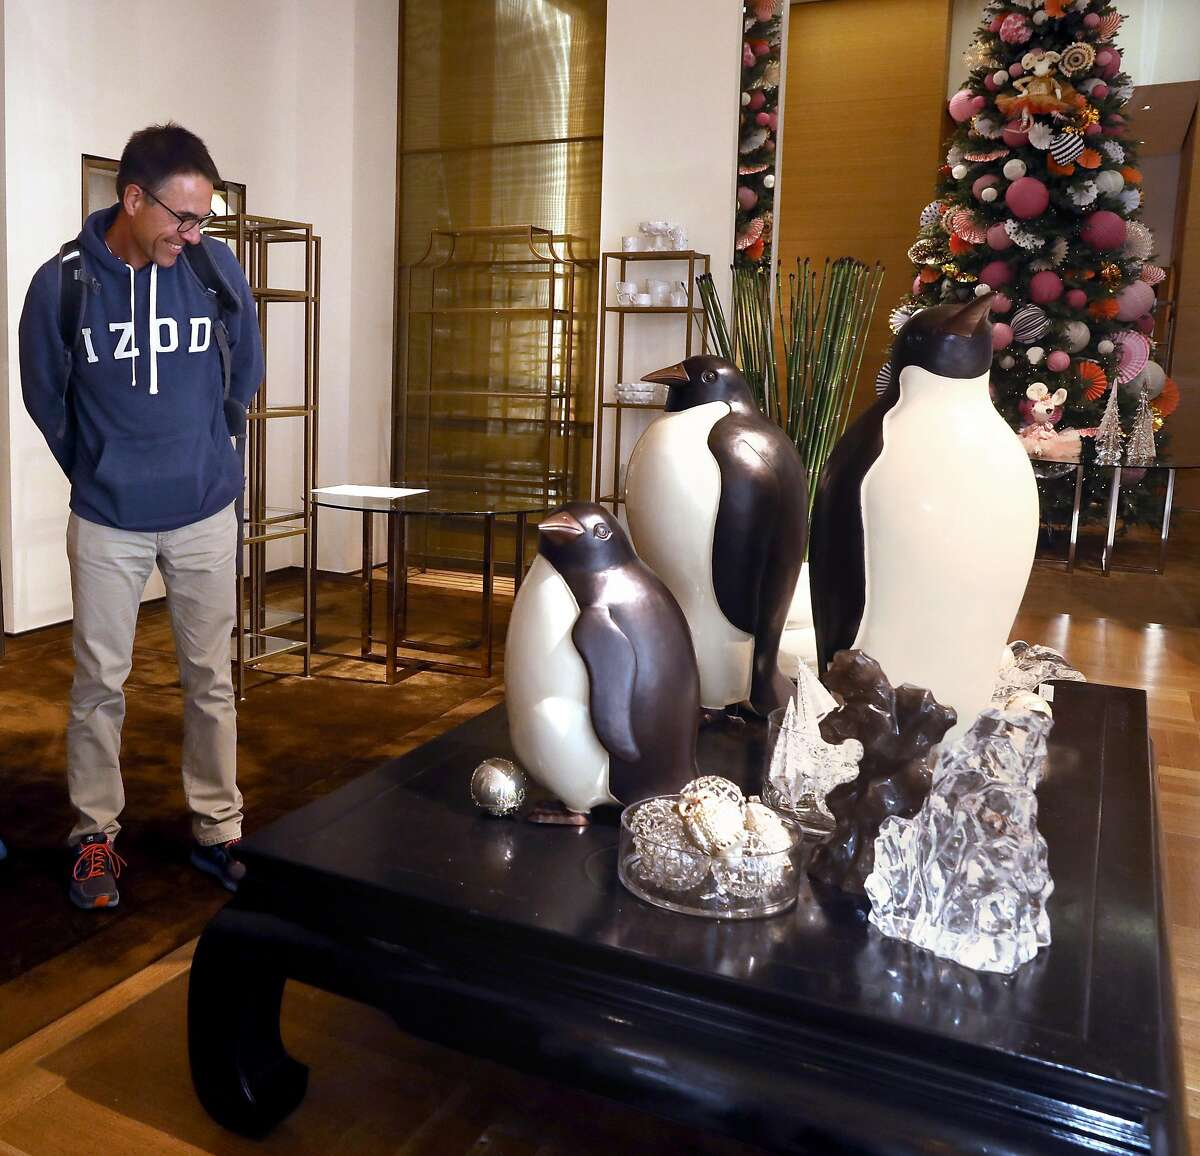 Andreas Huttmann visiting from Germany admires the penguin artwork from Robert Kuo seen at Gump�s which is opening a store in time for the holiday season seen on Post St. near Union Square on Thursday, Oct. 3, 2019, in San Francisco, Calif.